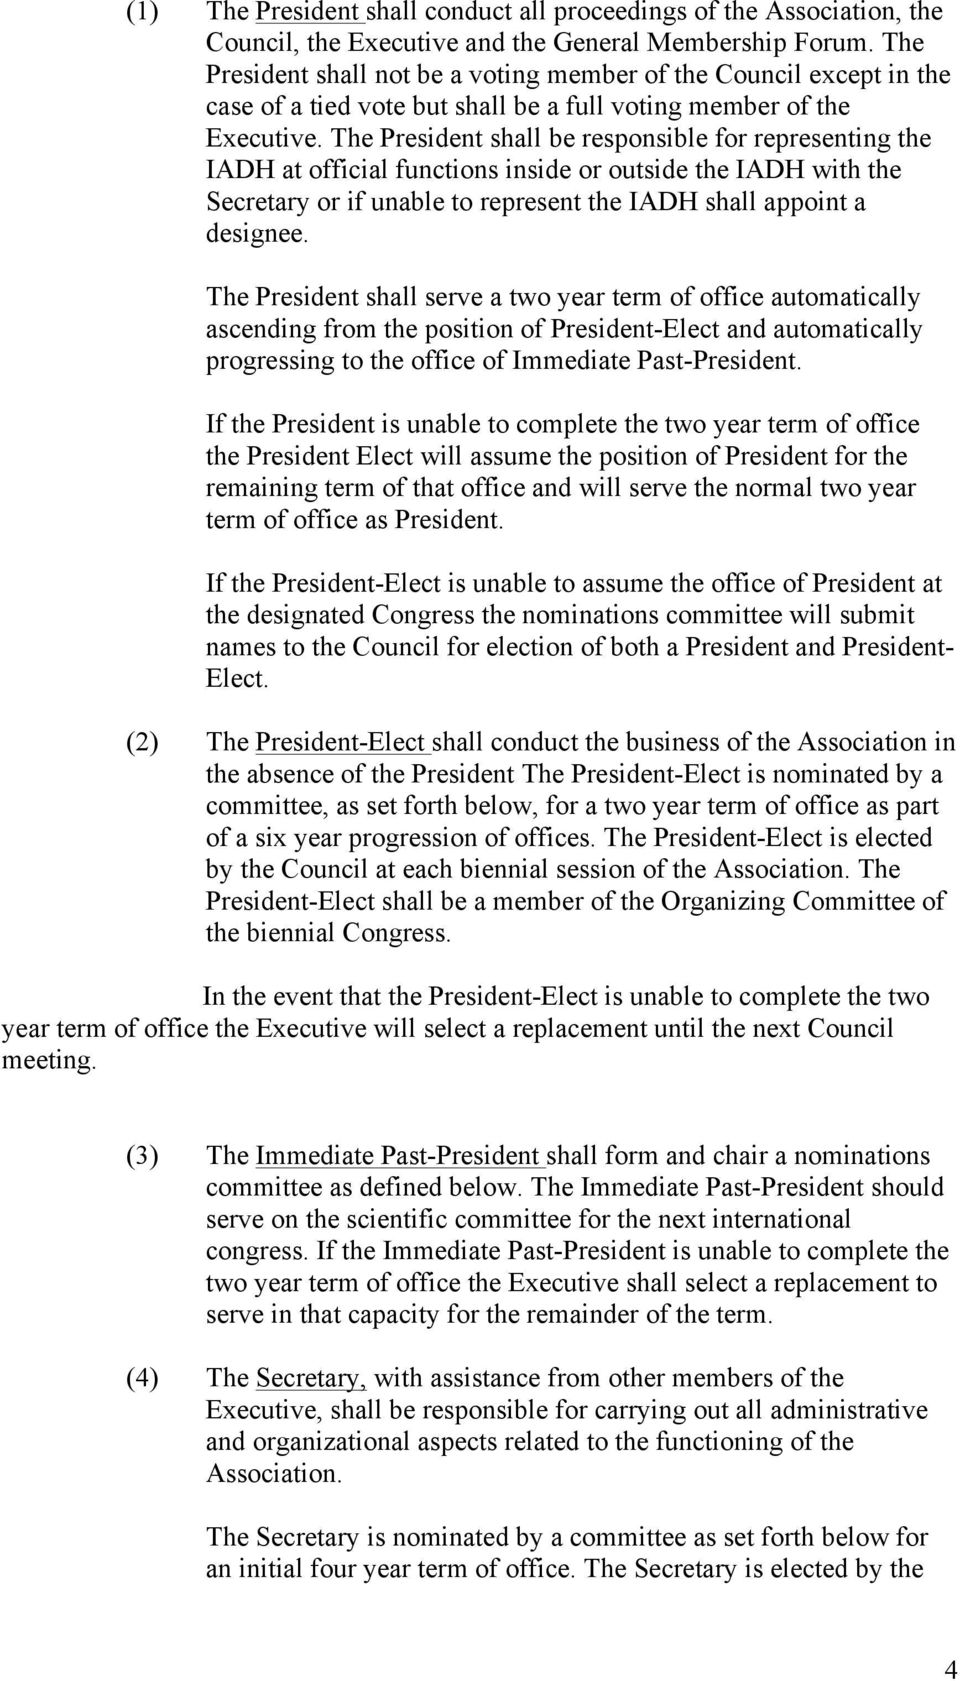 The President shall be responsible for representing the IADH at official functions inside or outside the IADH with the Secretary or if unable to represent the IADH shall appoint a designee.